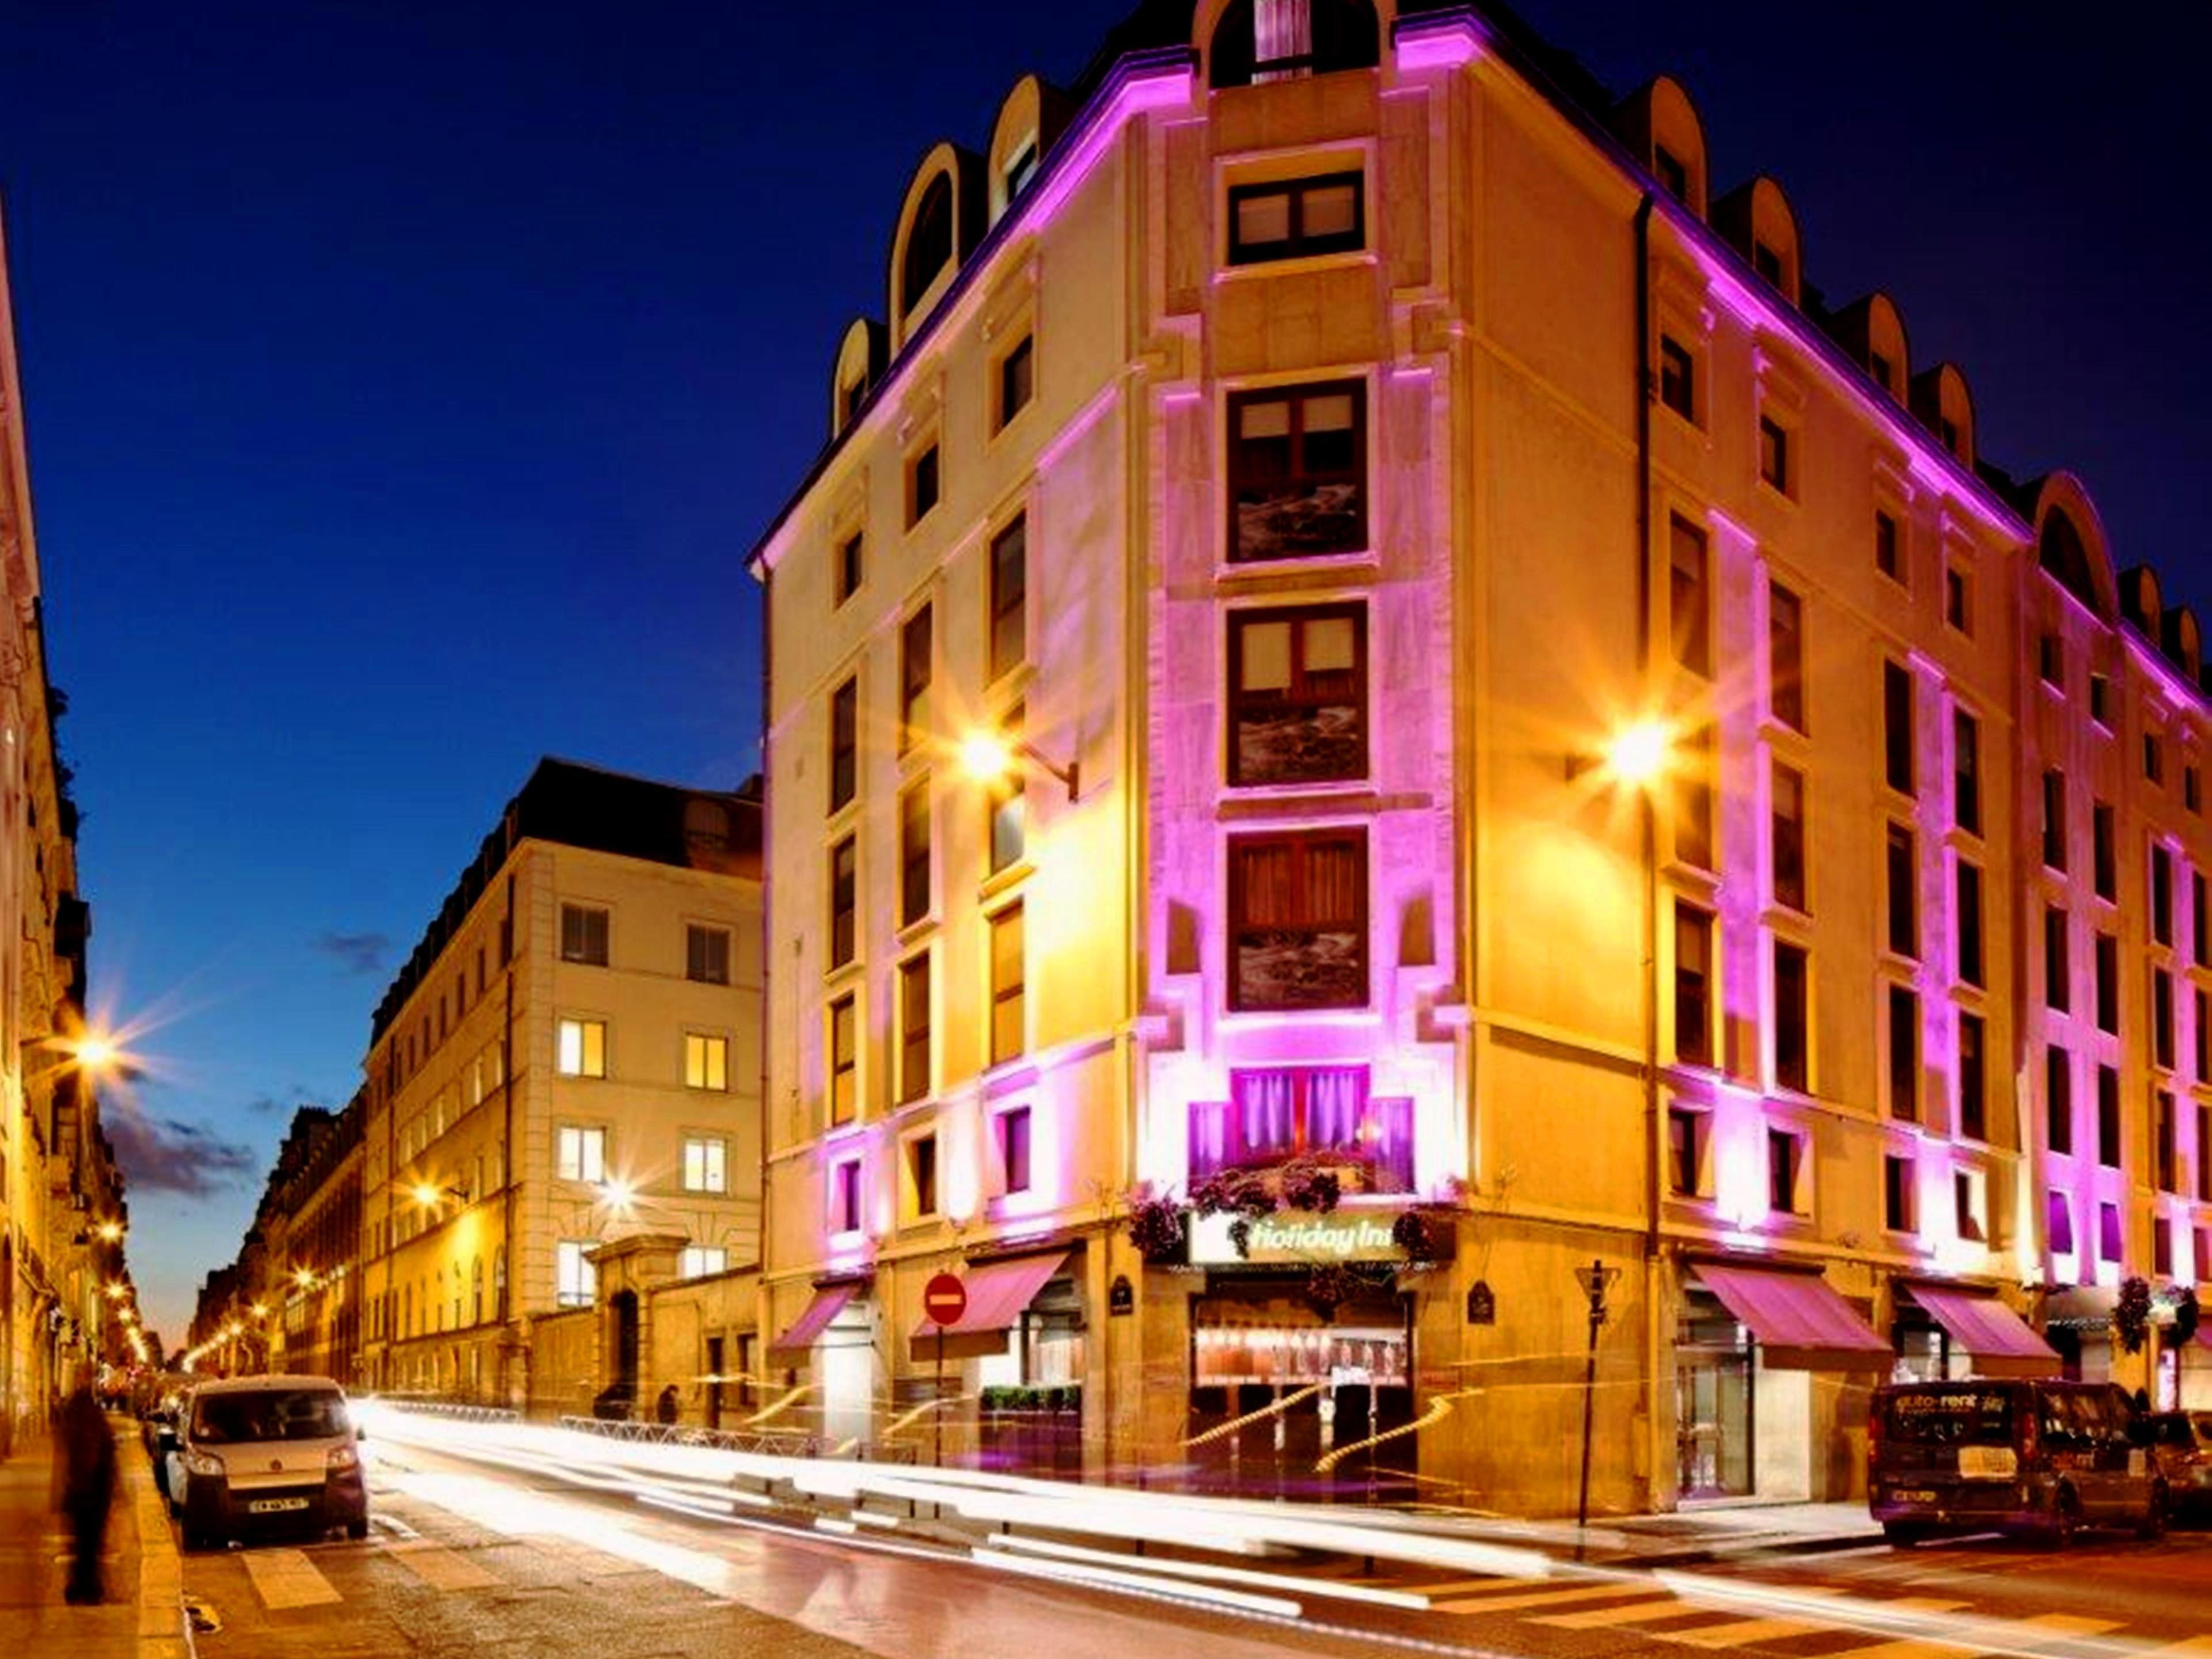 Welcome to the Hotel Holiday Inn Paris Saint Germain des Prés !